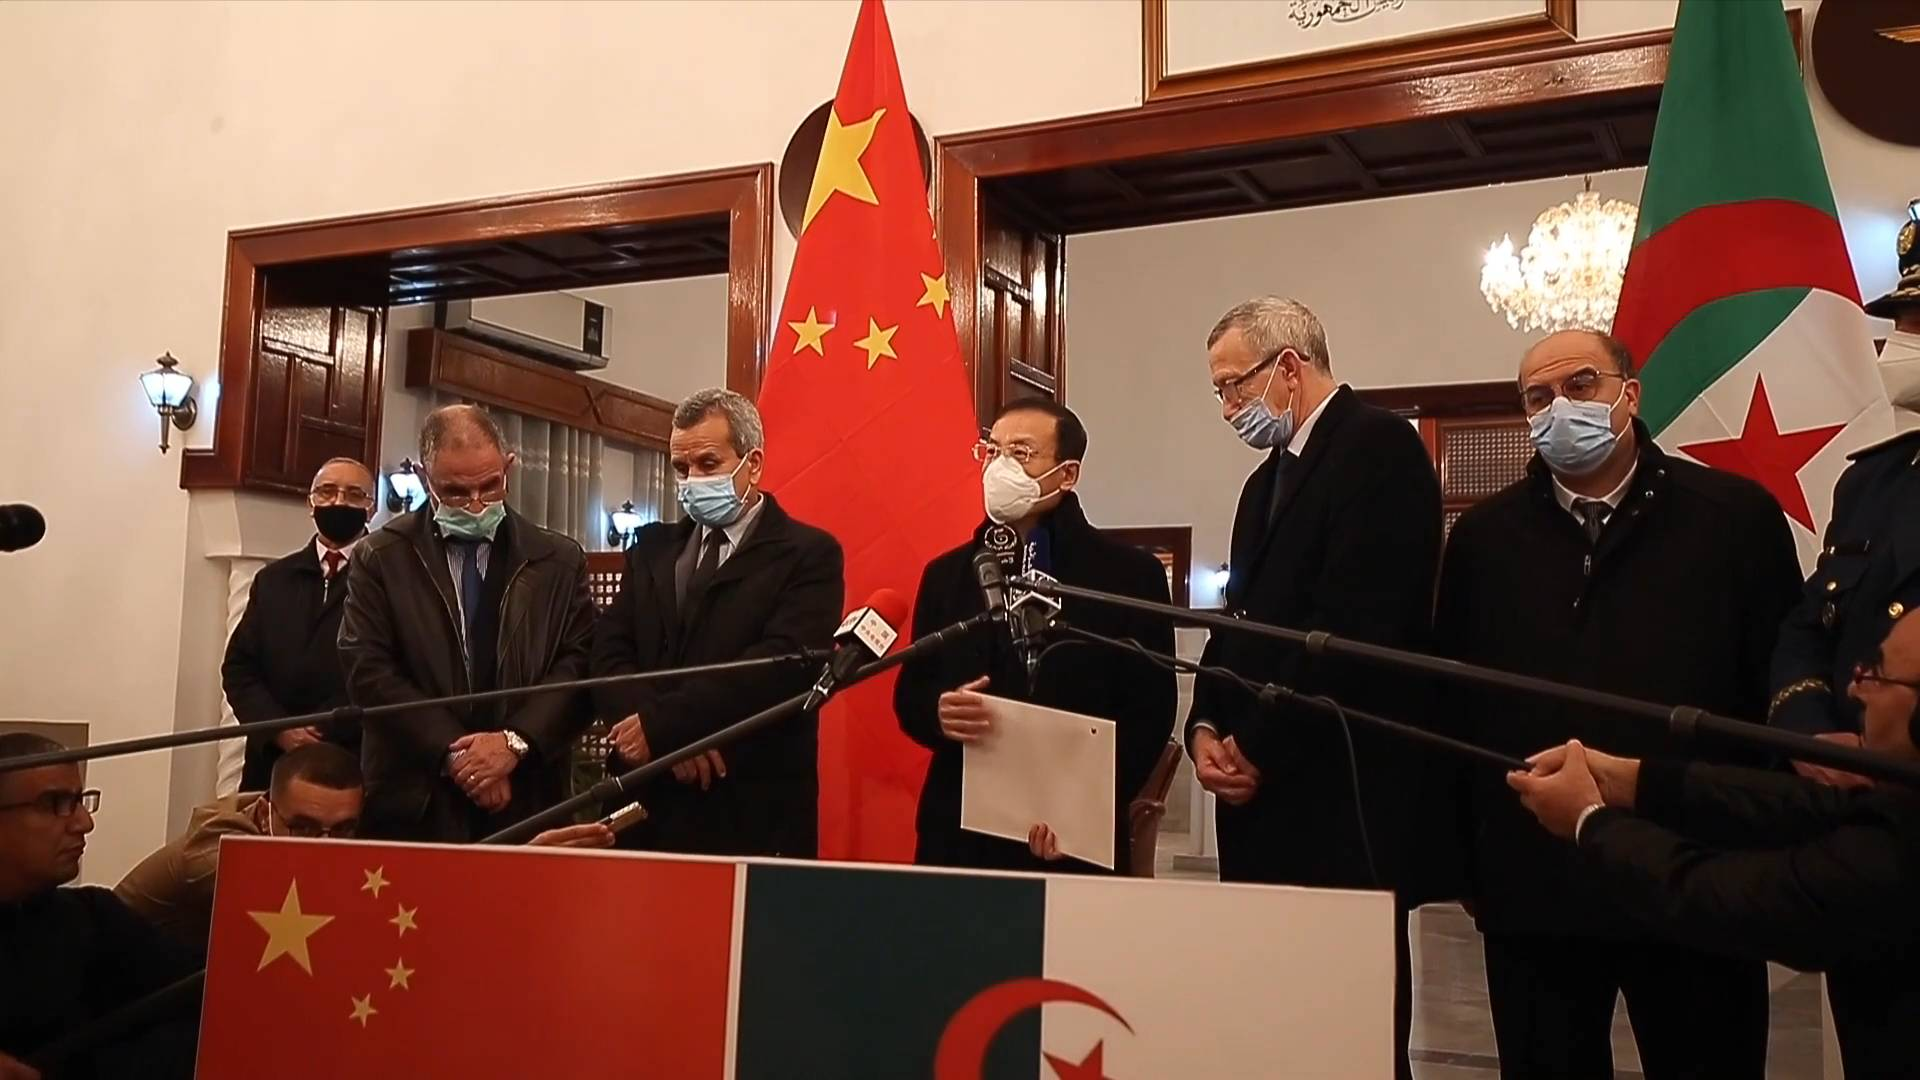 GLOBALink | Algeria receives donation of 200,000 doses of anti-COVID-19 vaccine from China